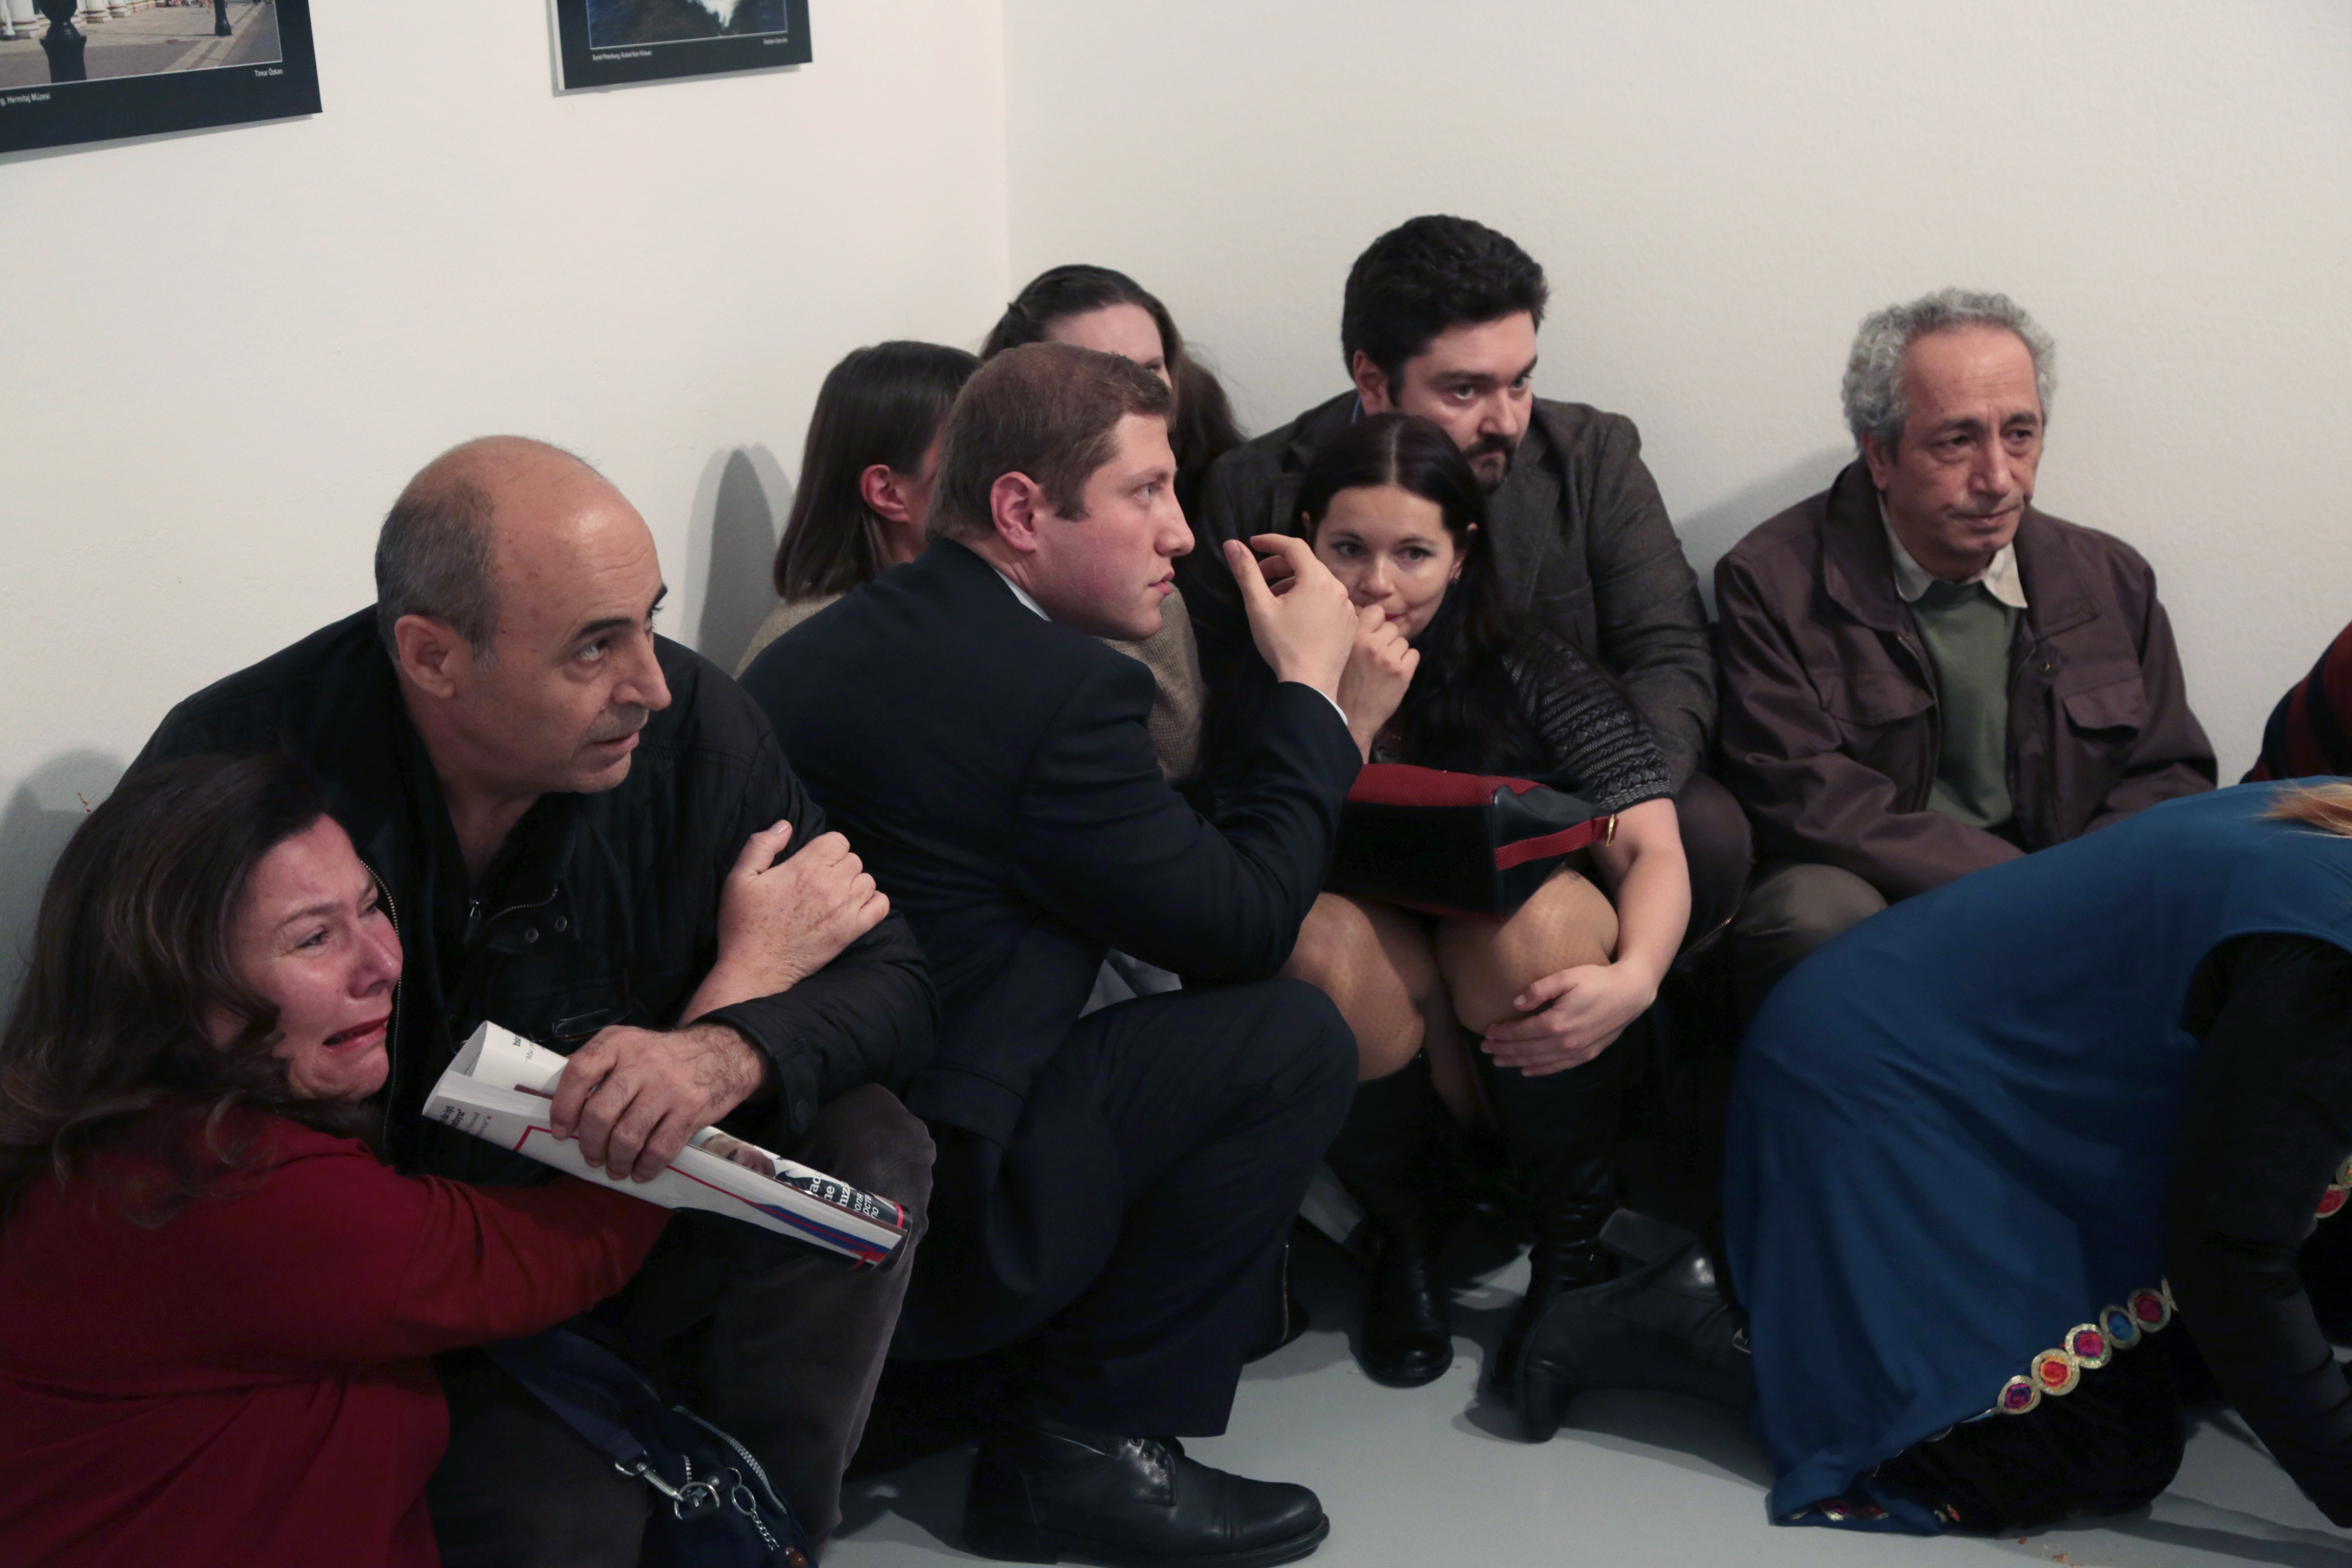 People crouch in a corner after Andrei Karlov, the Russian Ambassador to Turkey, was shot at a photo gallery in Ankara, Turkey on Dec.19,2016. Karlov, 62, was several minutes into a speech at an embassy-sponsored photo exhibition when a man fired a gun at him. Karlov was rushed to a hospital after the attack and later died from his gunshot wounds. (AP Photo/Burhan Ozbilici)